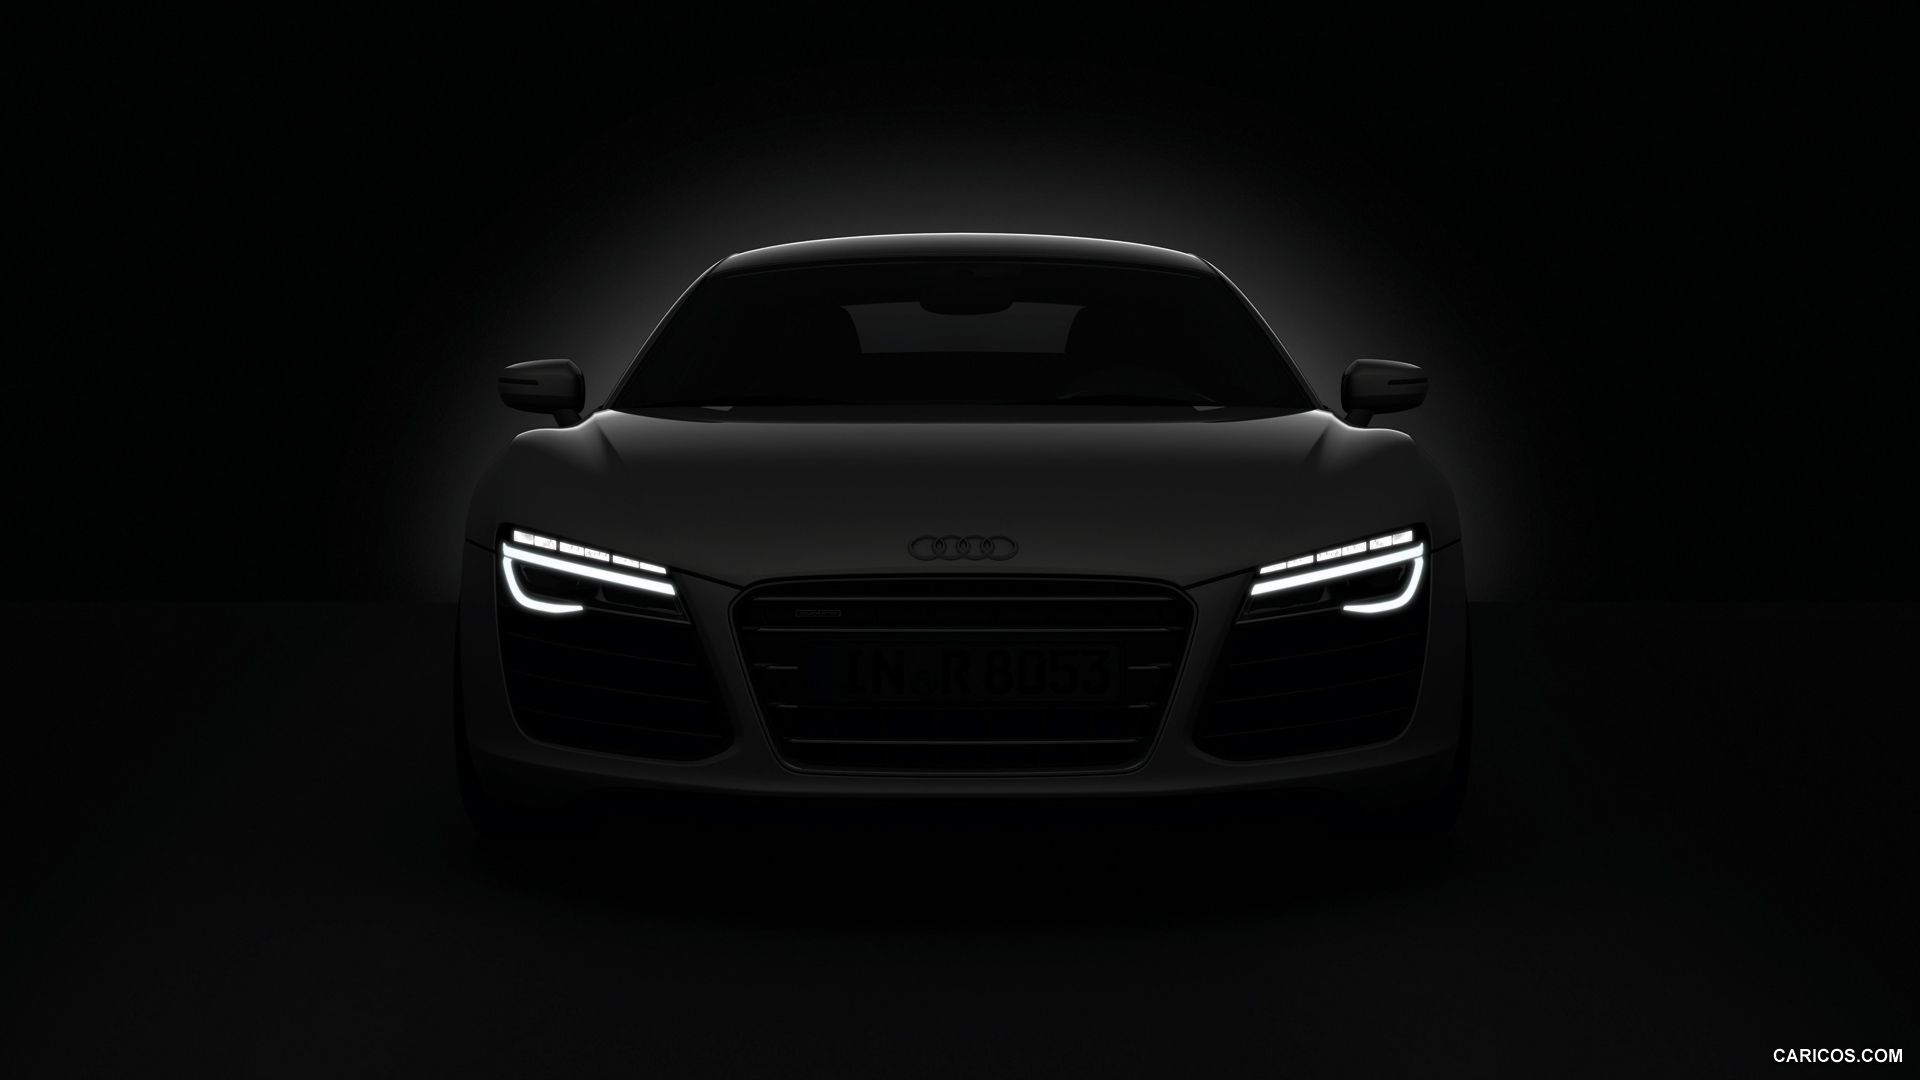 Pin By Anisha Lutchman On Eyes With Images Black Audi Audi R8 Car Headlights